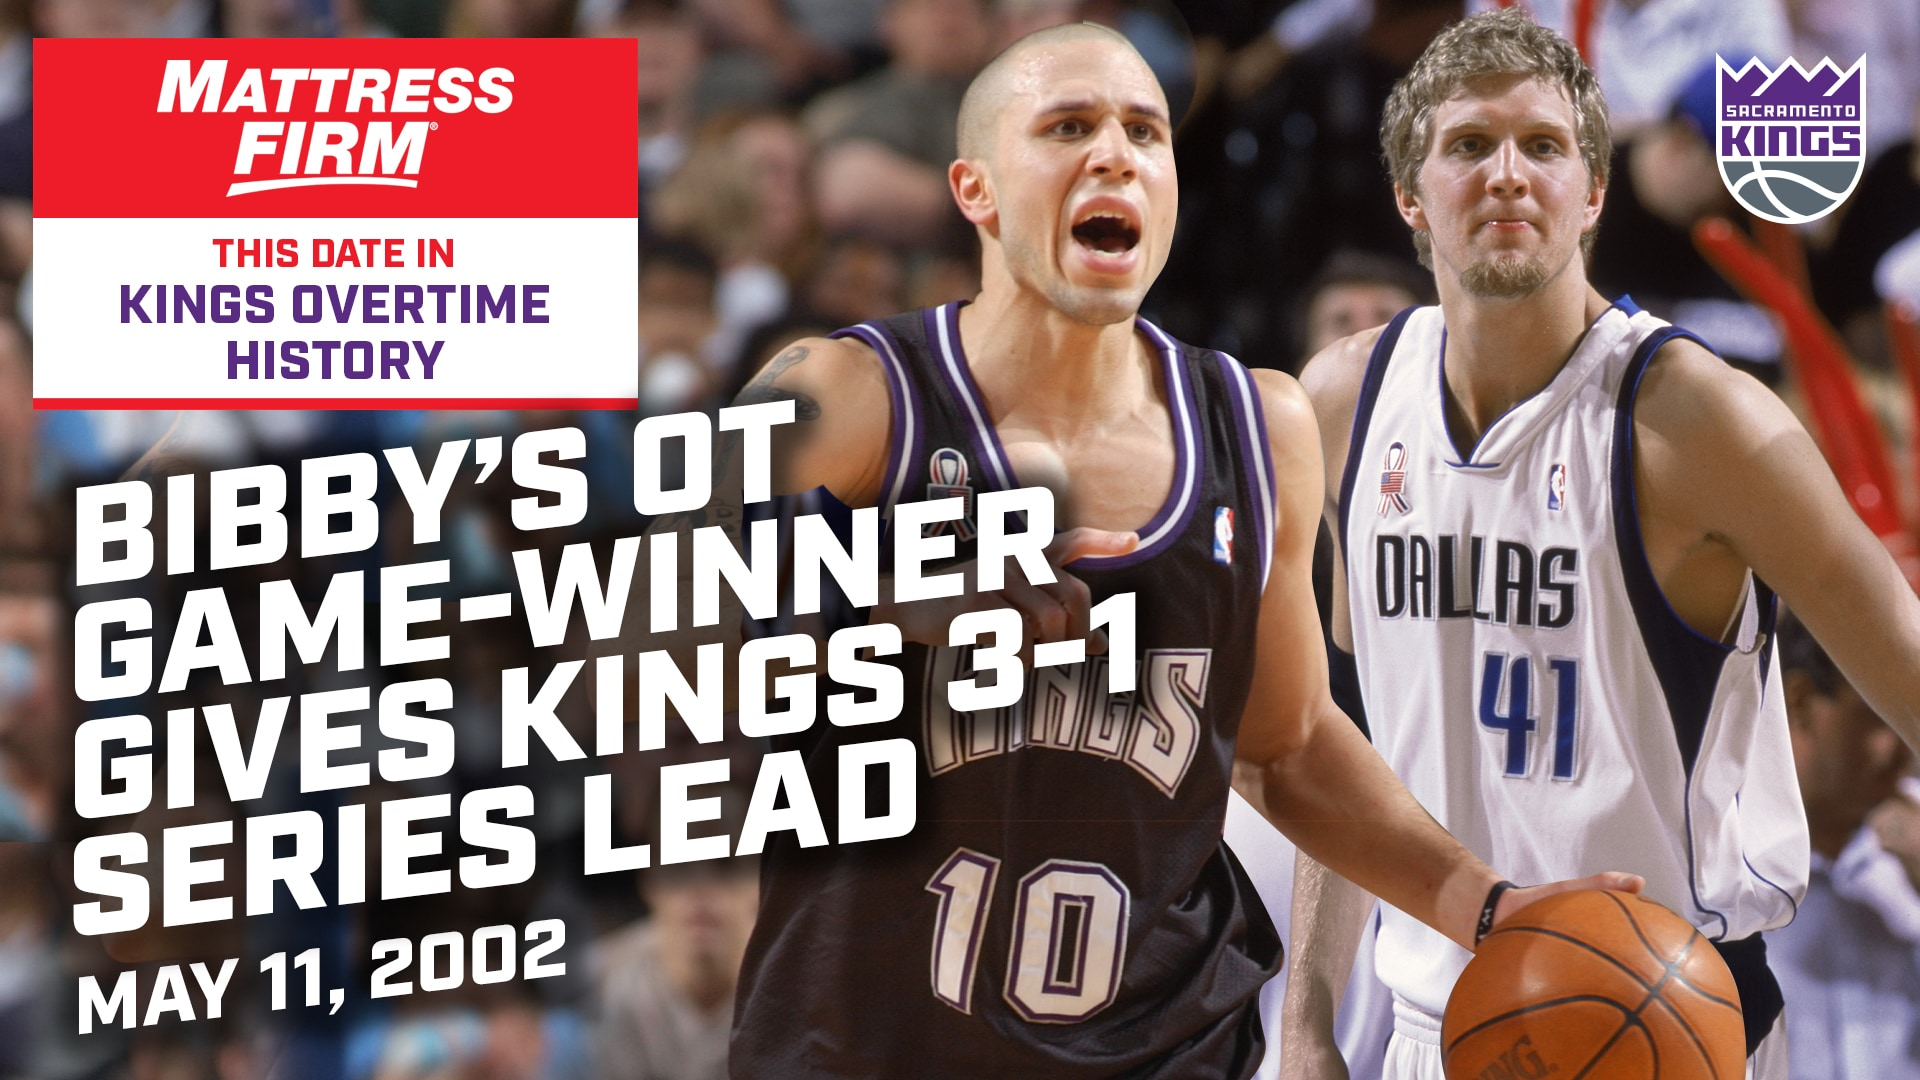 This Date in Kings OT History: Bibby's Playoff Game-Winner in Dallas | 5.11.02